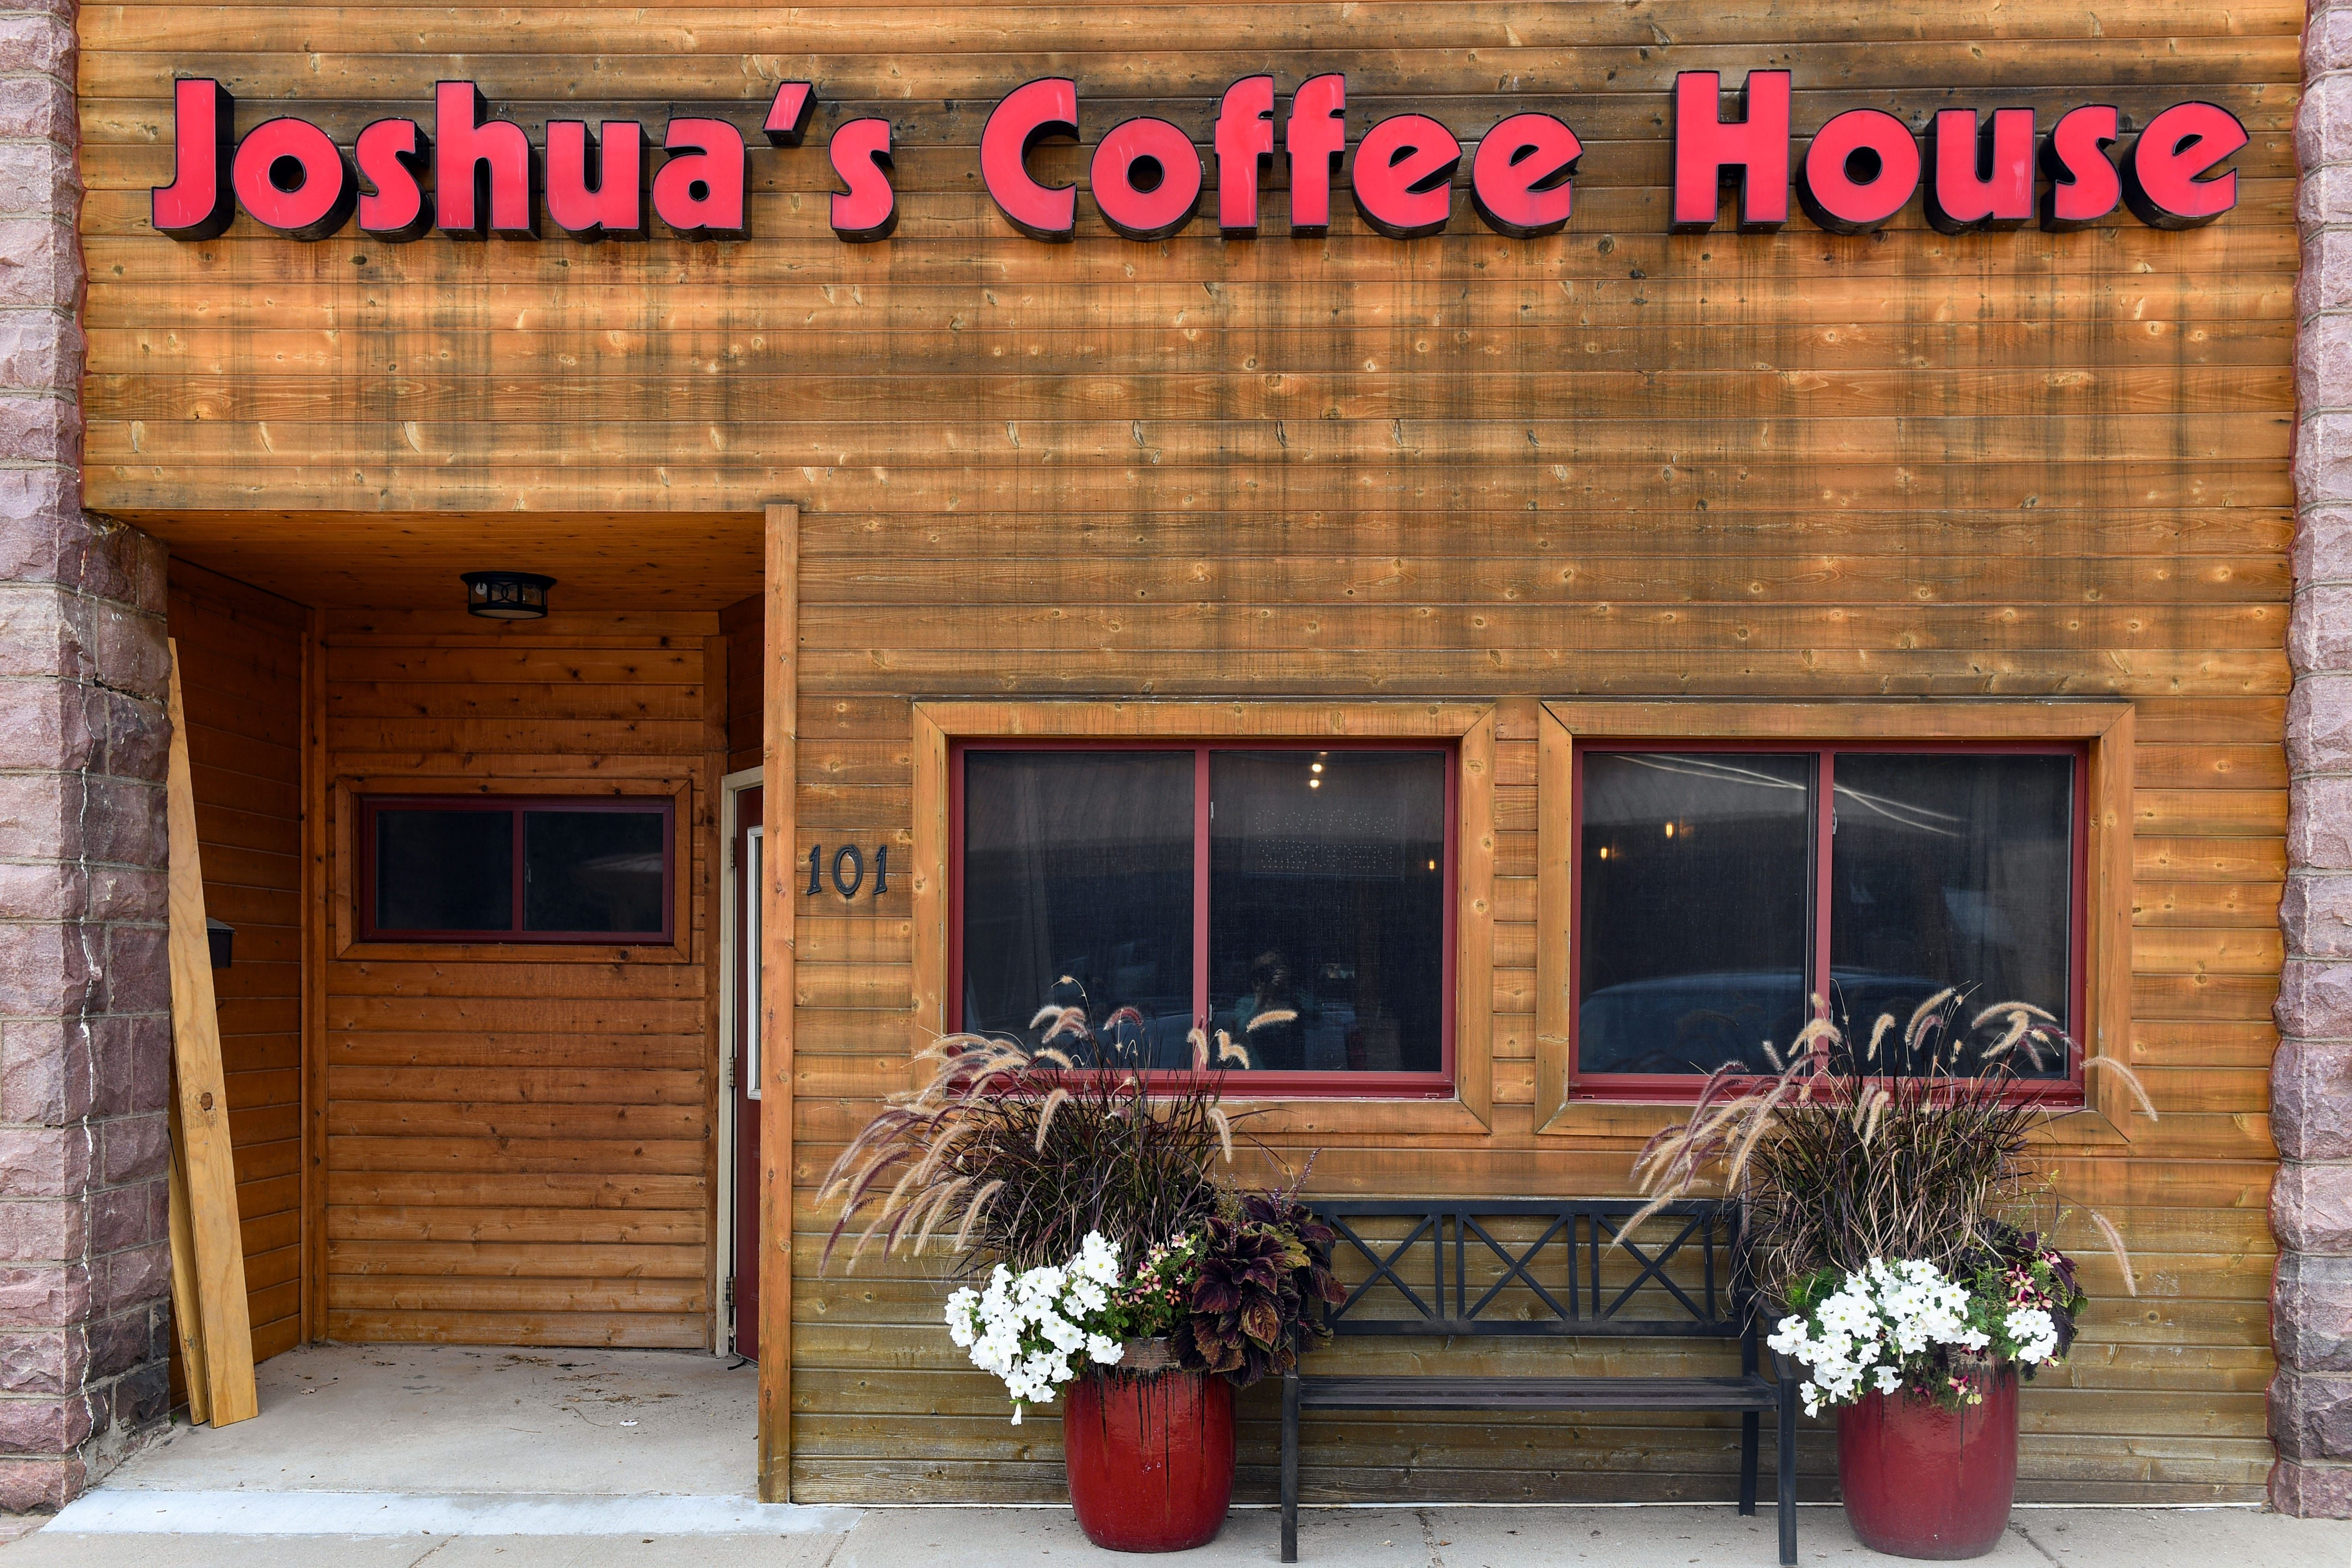 More than a coffee shop, Hartford's newest business is a